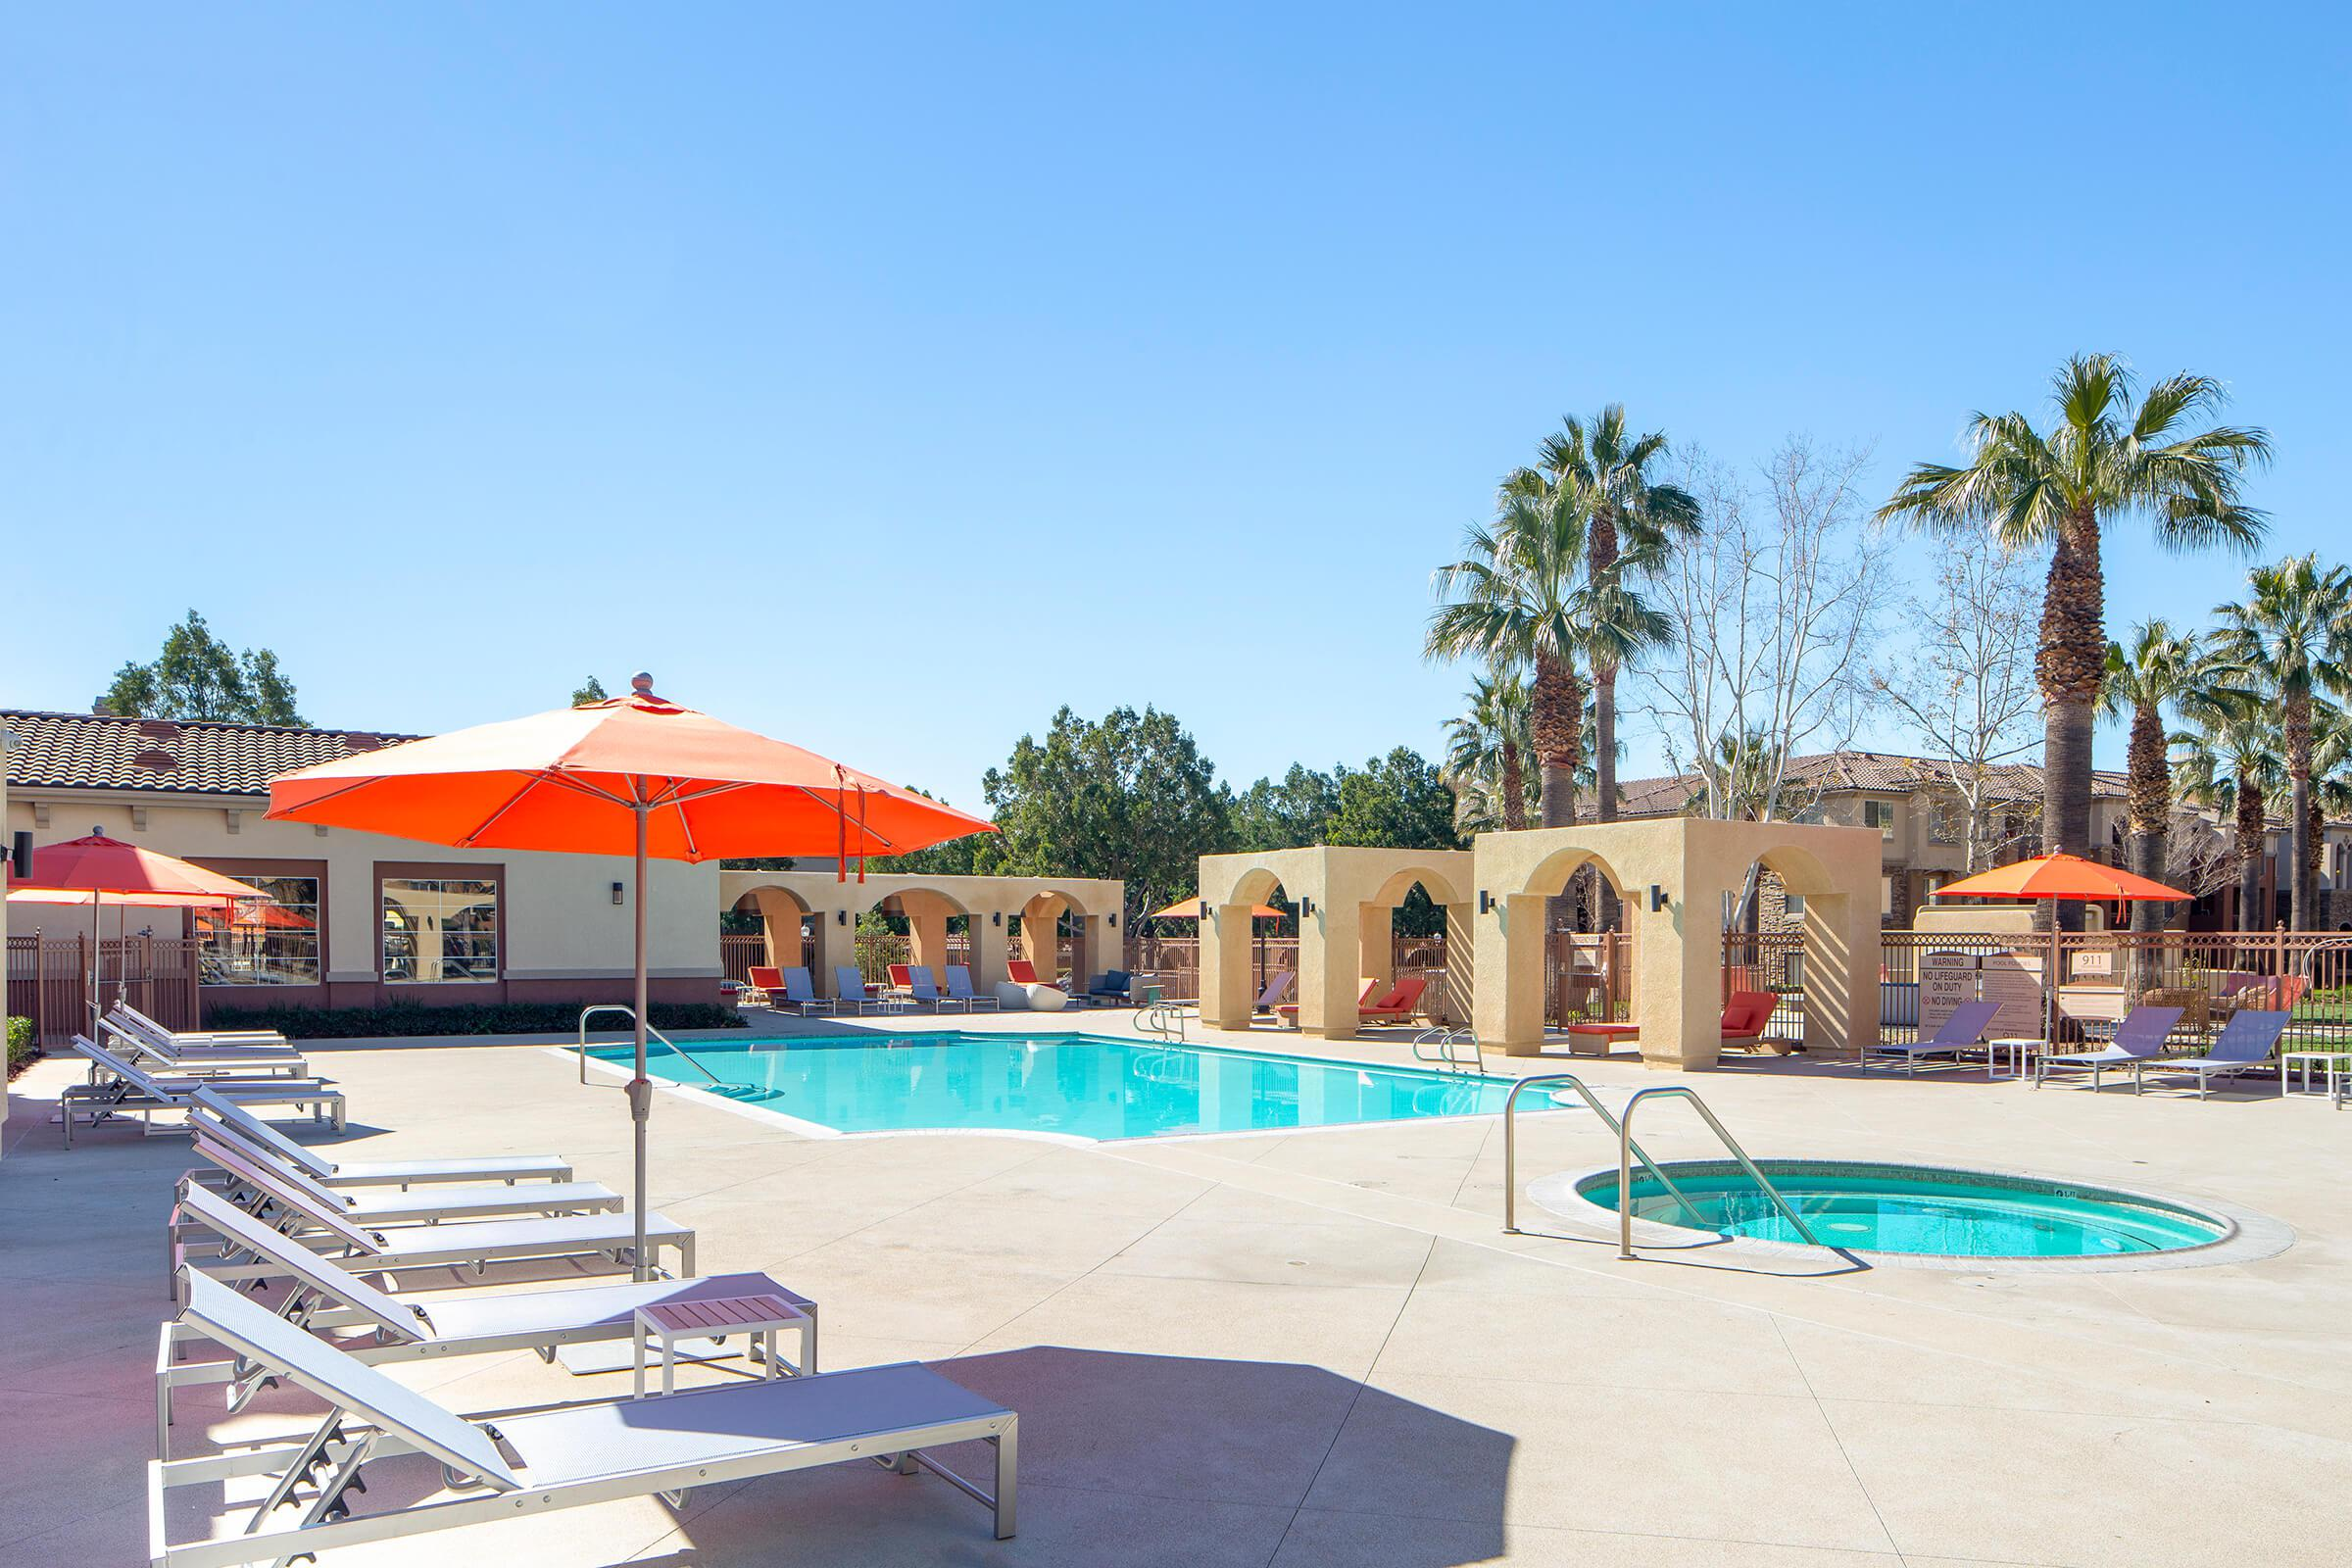 Community pool and spa at Rancho Cucamonga apartment complex